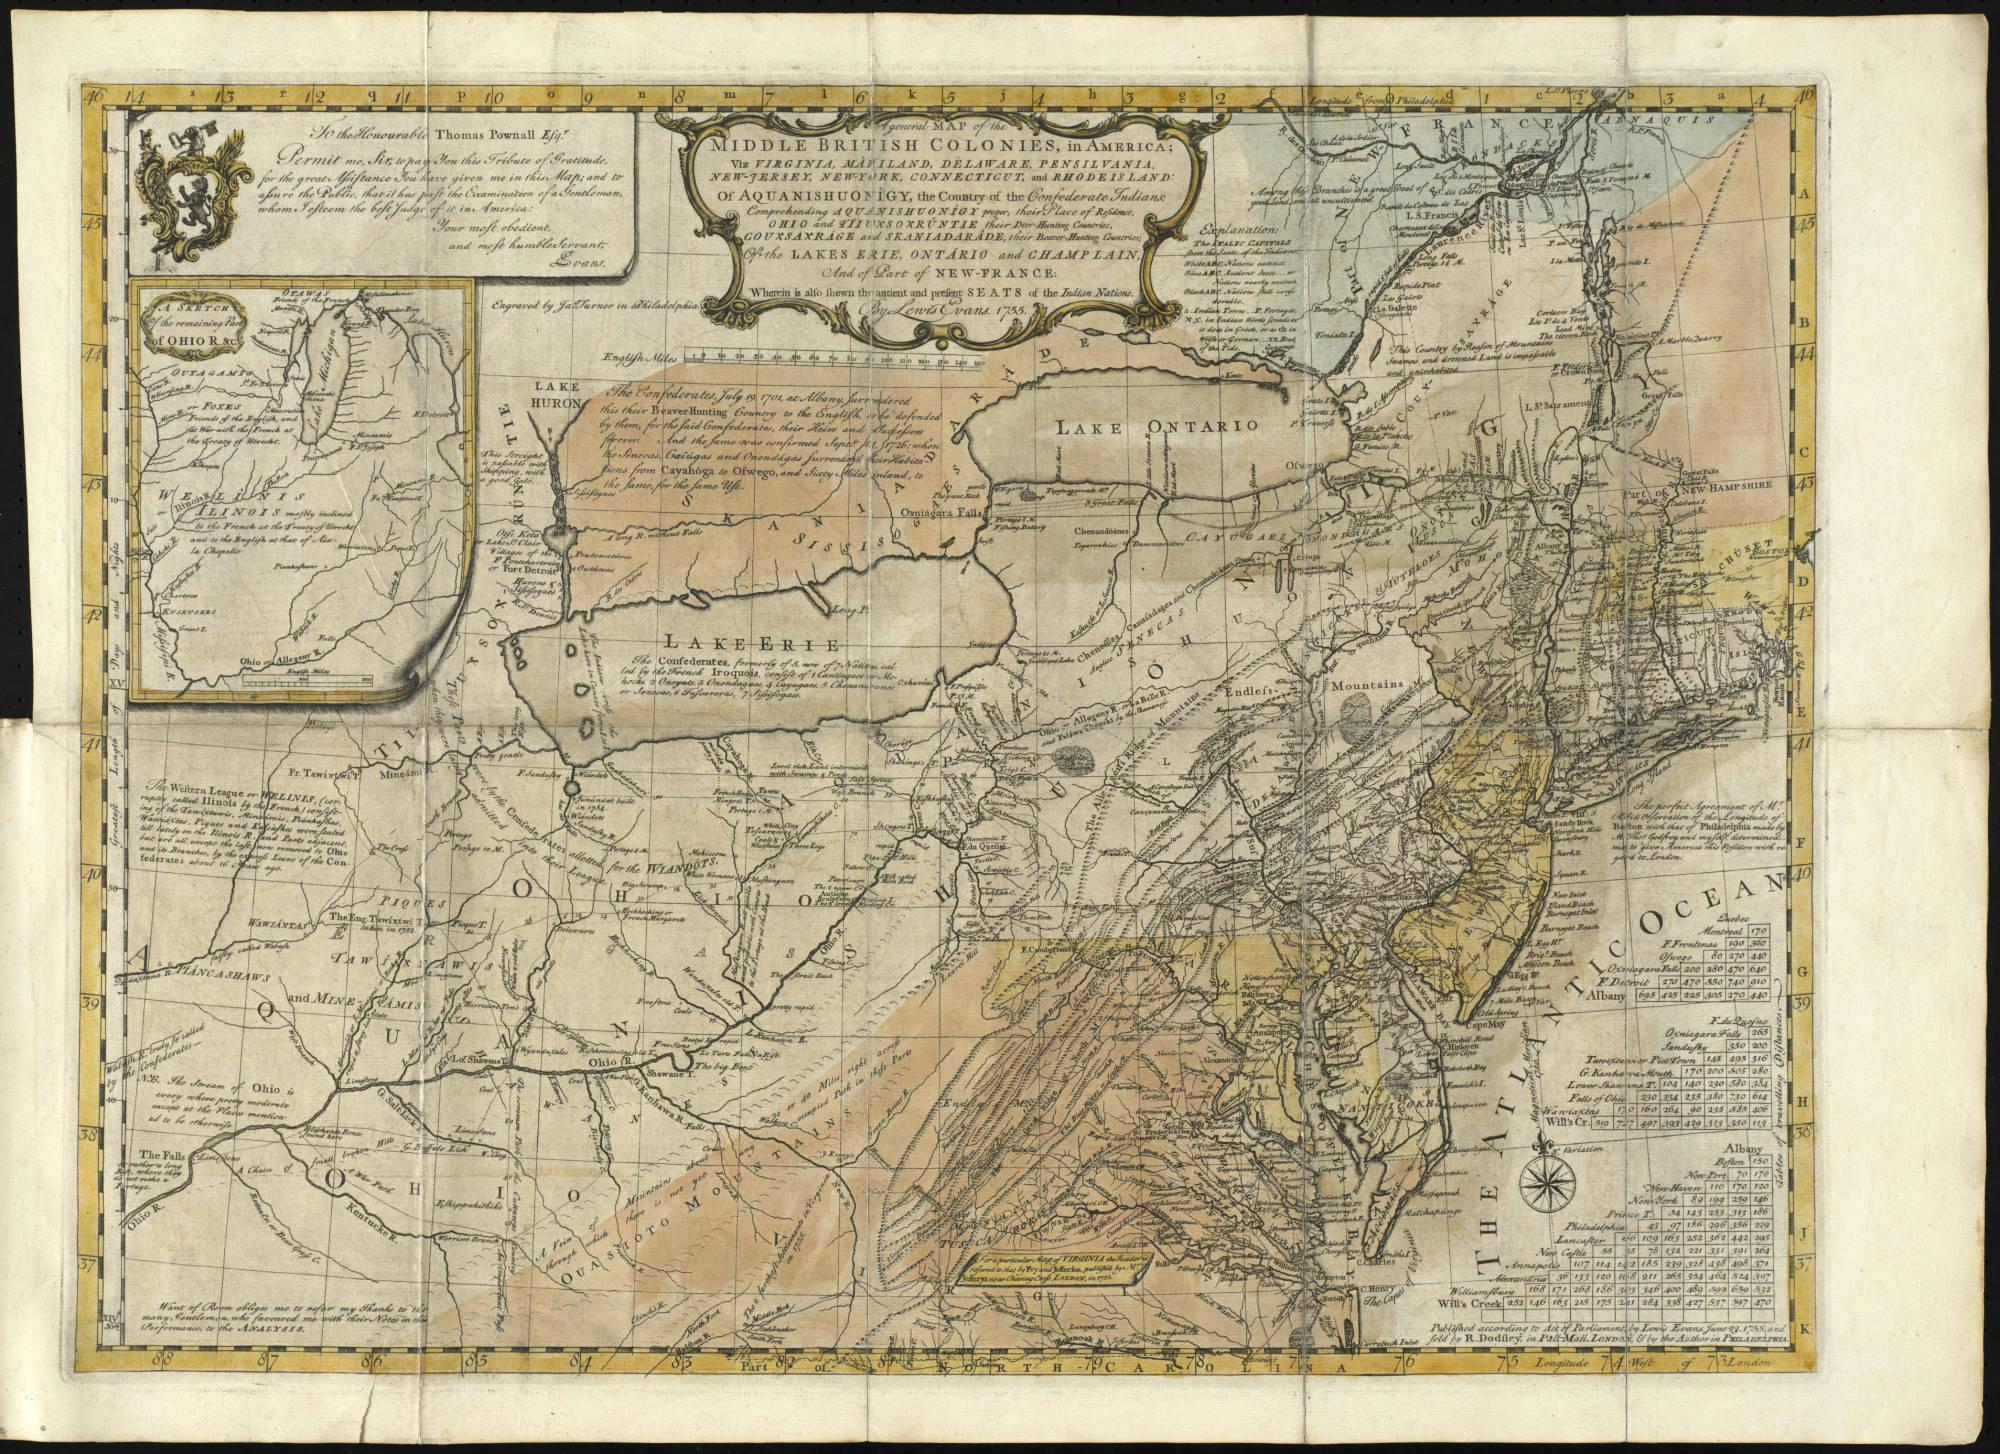 Lewis Evans, A general map of the middle British Colonies, in America (1755). The Welsh-born Evans produced the most influential map of the middle colonies in the eighteenth century. Dedicated to Thomas Pownall, then lieutenant governor of New Jersey, Evans's map reveals the North American interior at the outbreak of the French and Indian War. Richard H. Brown Revolutionary War Map Collection, MVLA. (Digital image provided by the Leventhal Map & Education Center.)